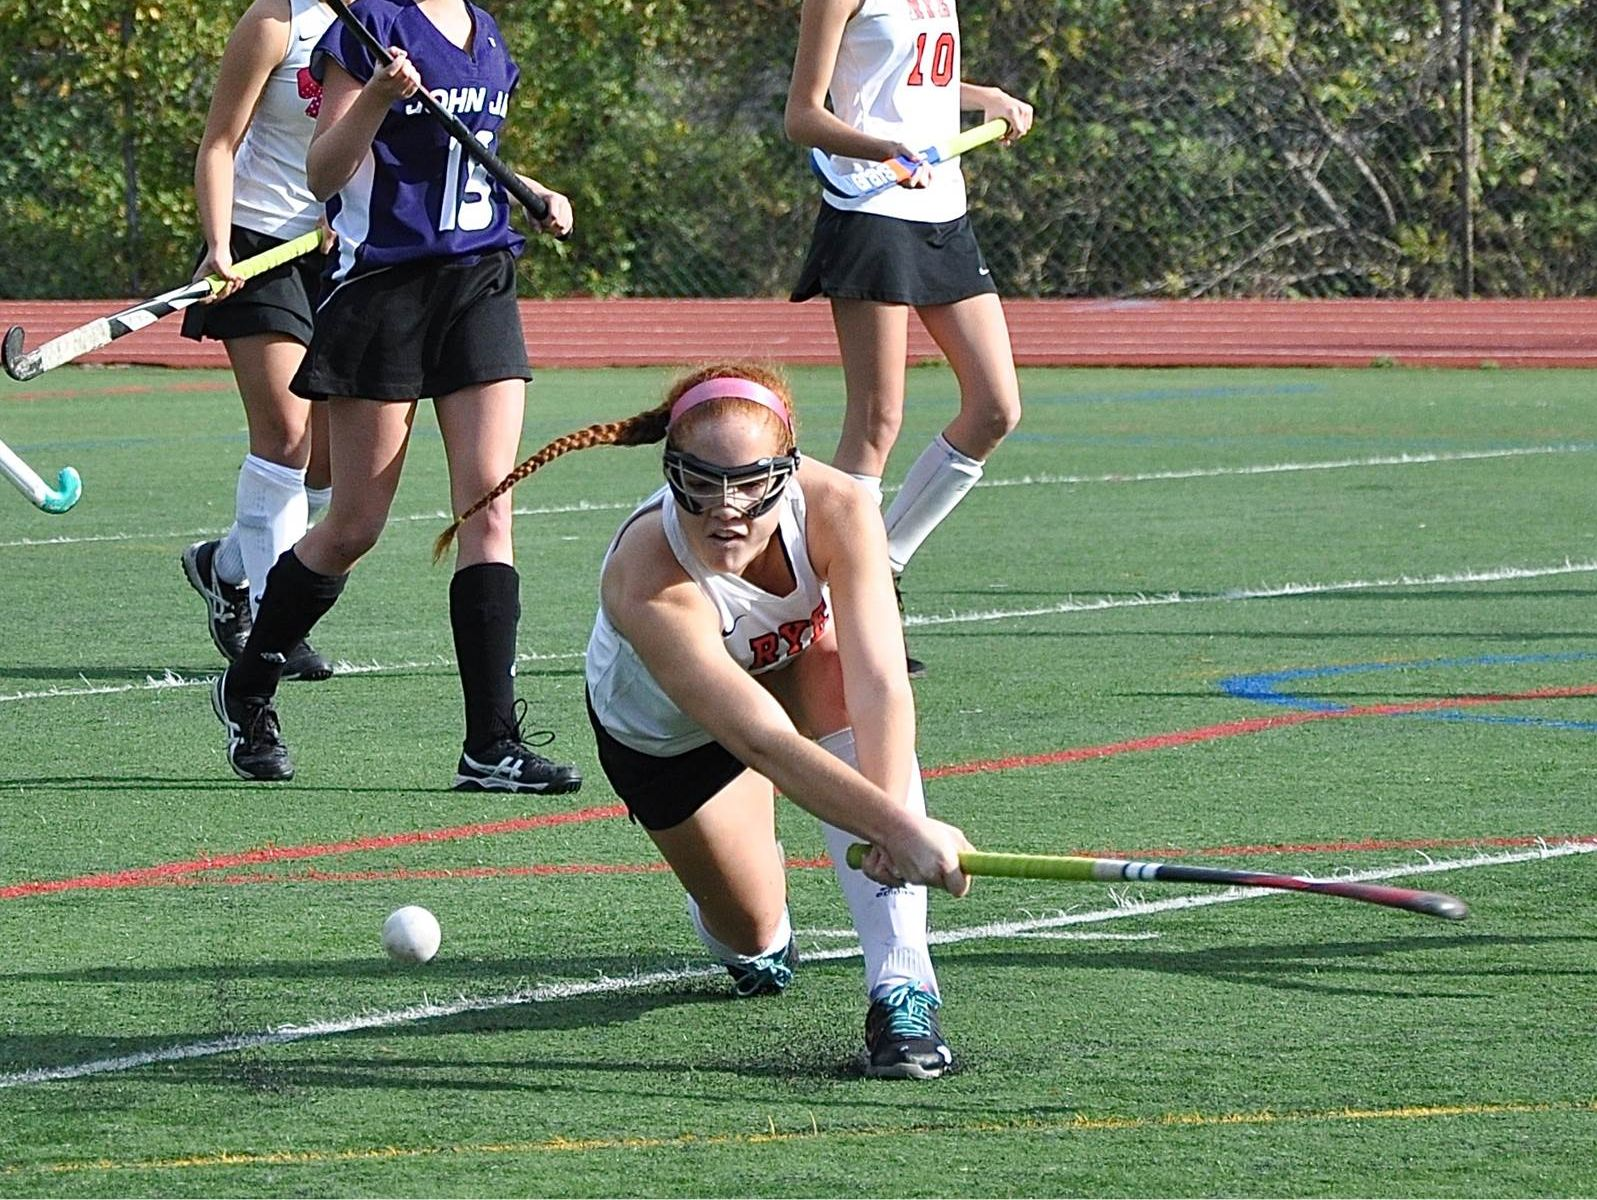 Rye's Taylor Volpe gets low to drive ball out of trouble.